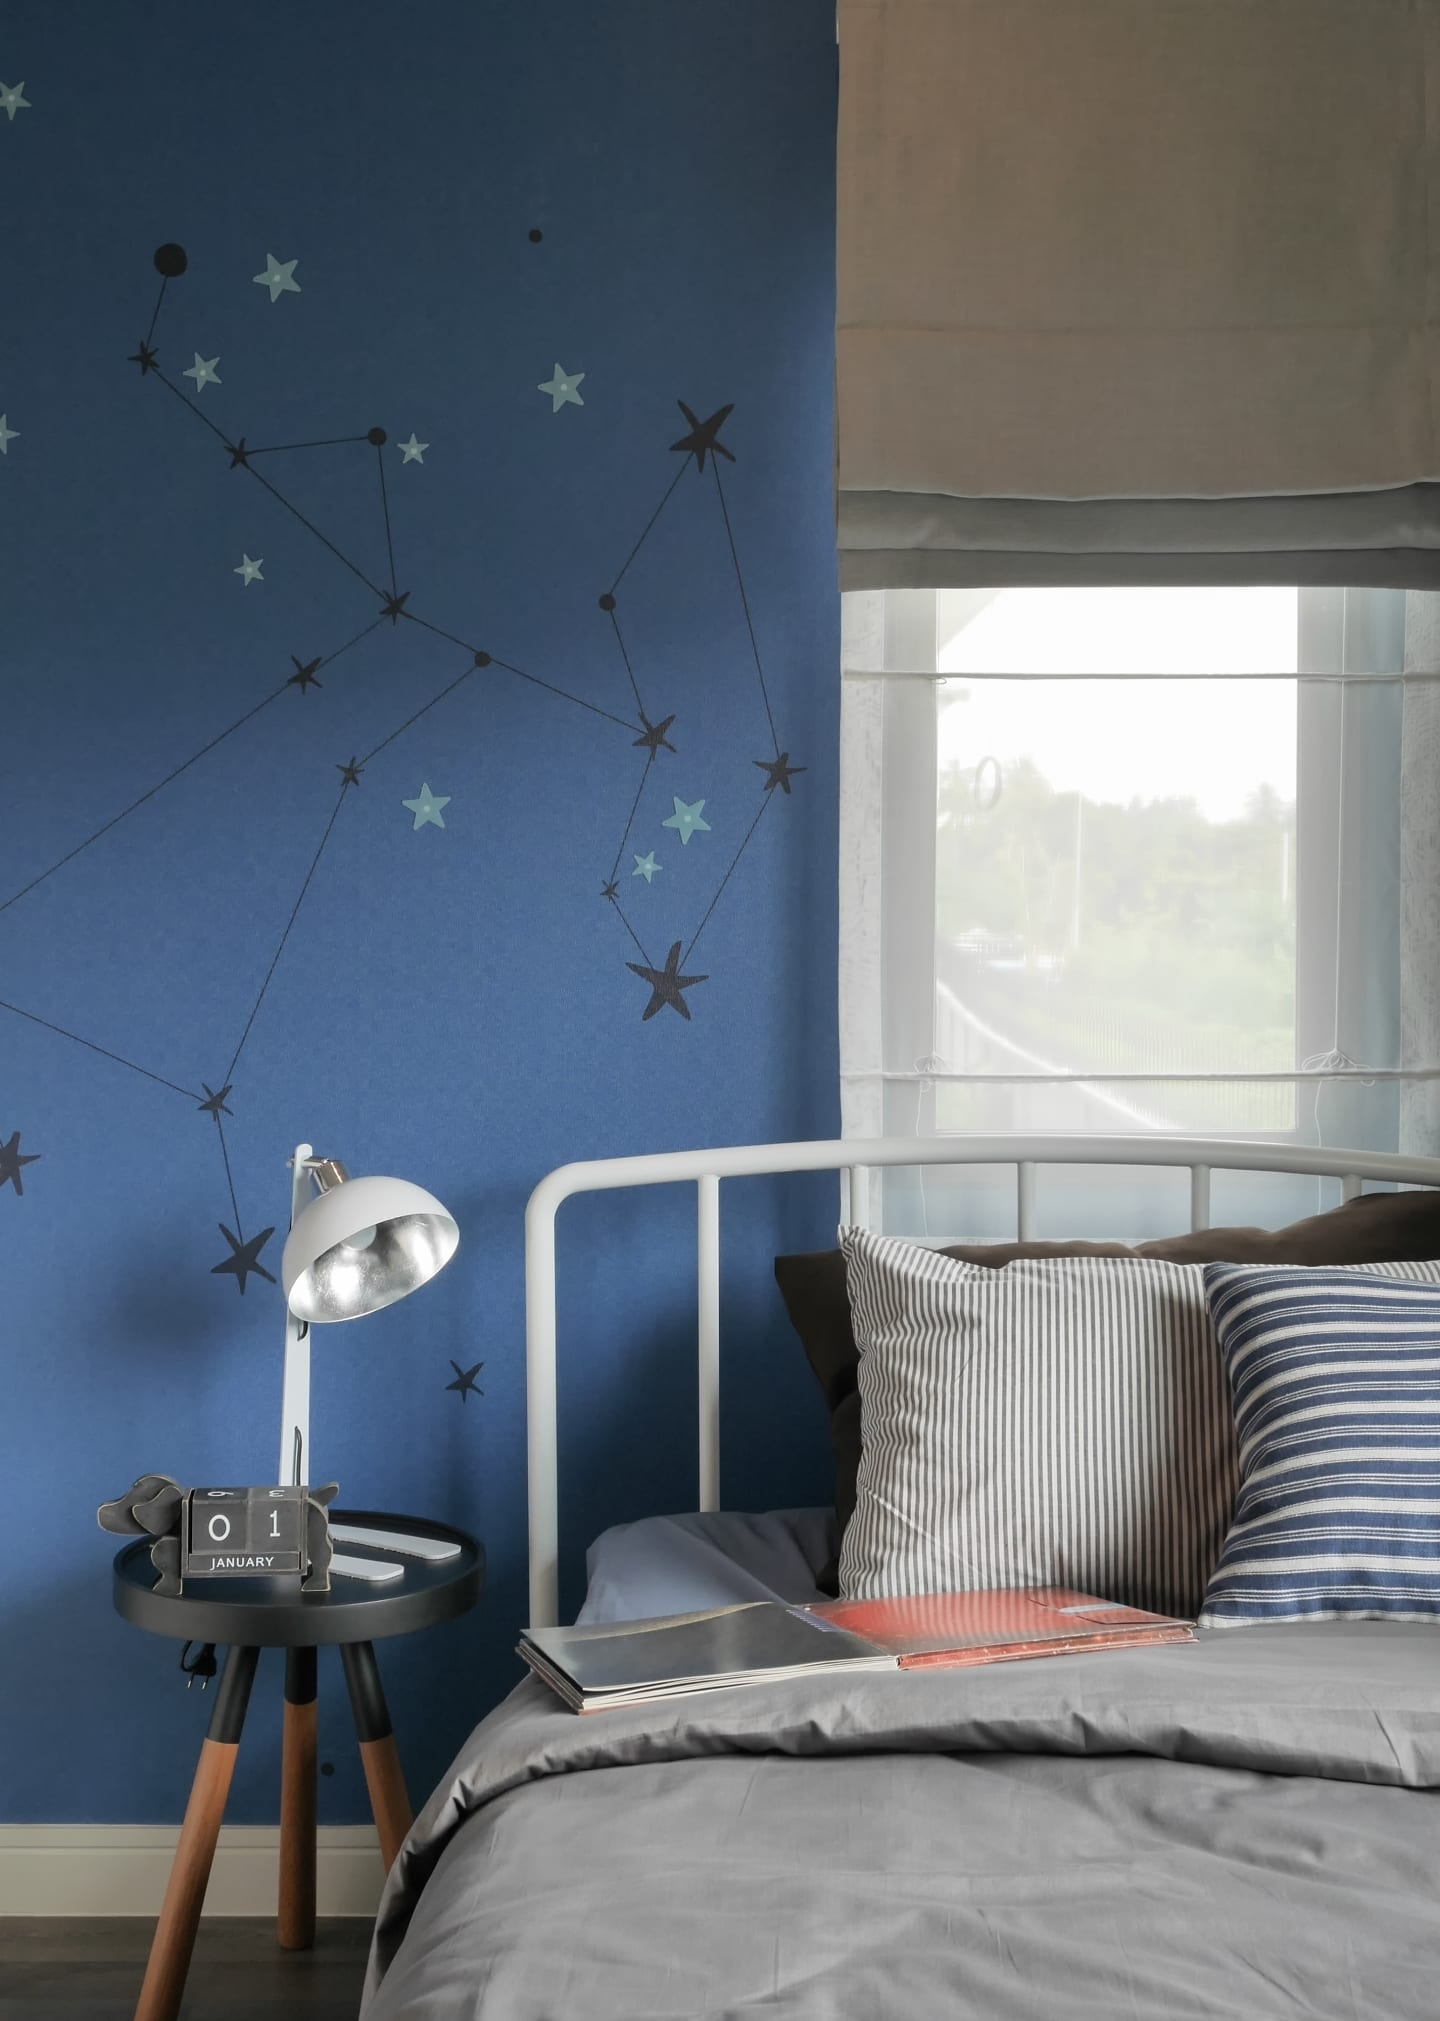 Star stickers on a blue bedroom wall